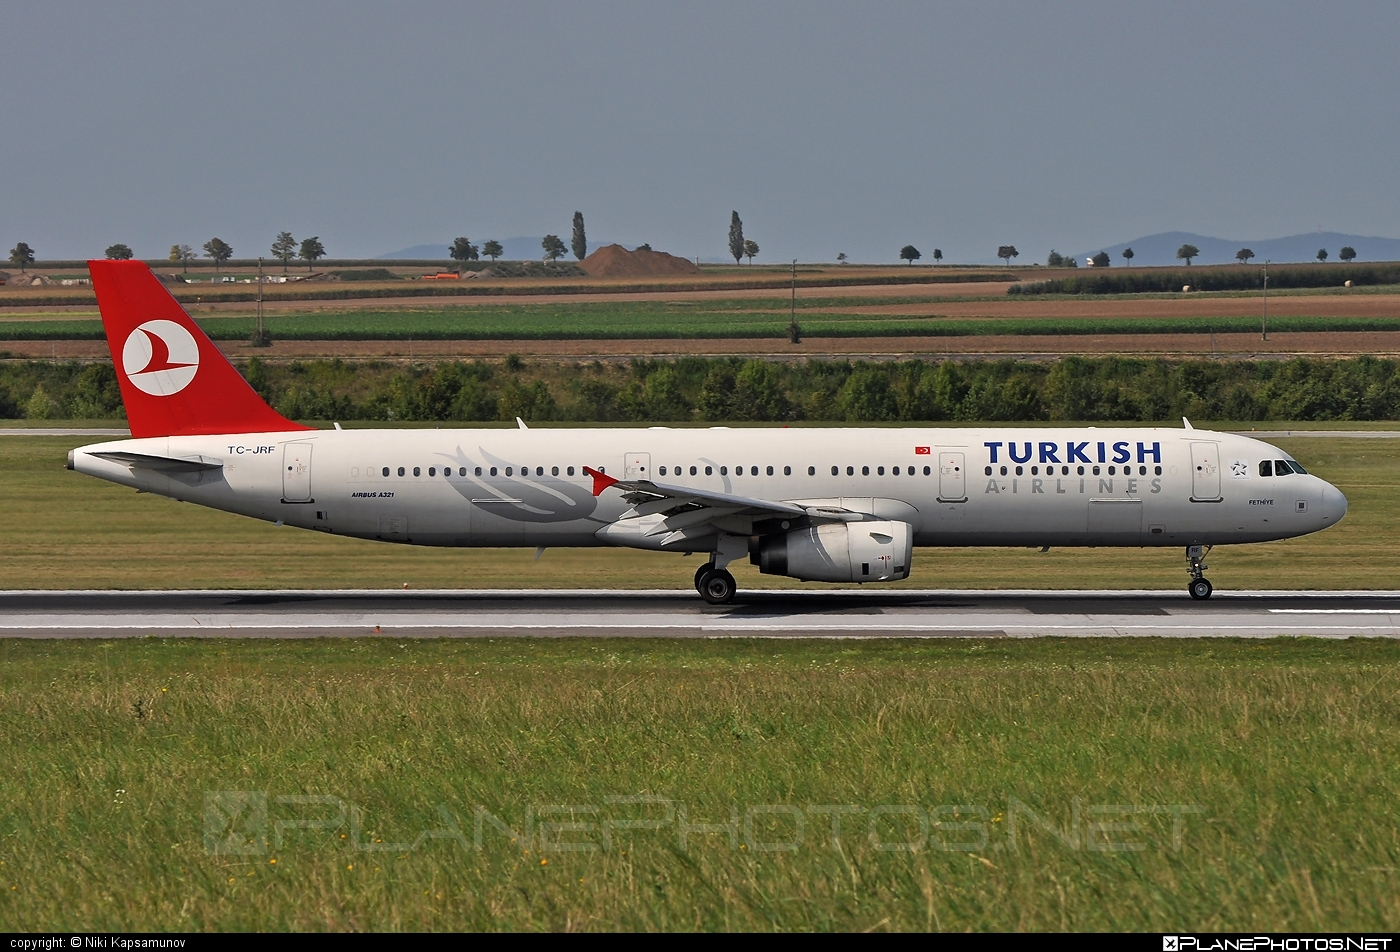 Airbus A321-231 - TC-JRF operated by Turkish Airlines #a320family #a321 #airbus #airbus321 #turkishairlines